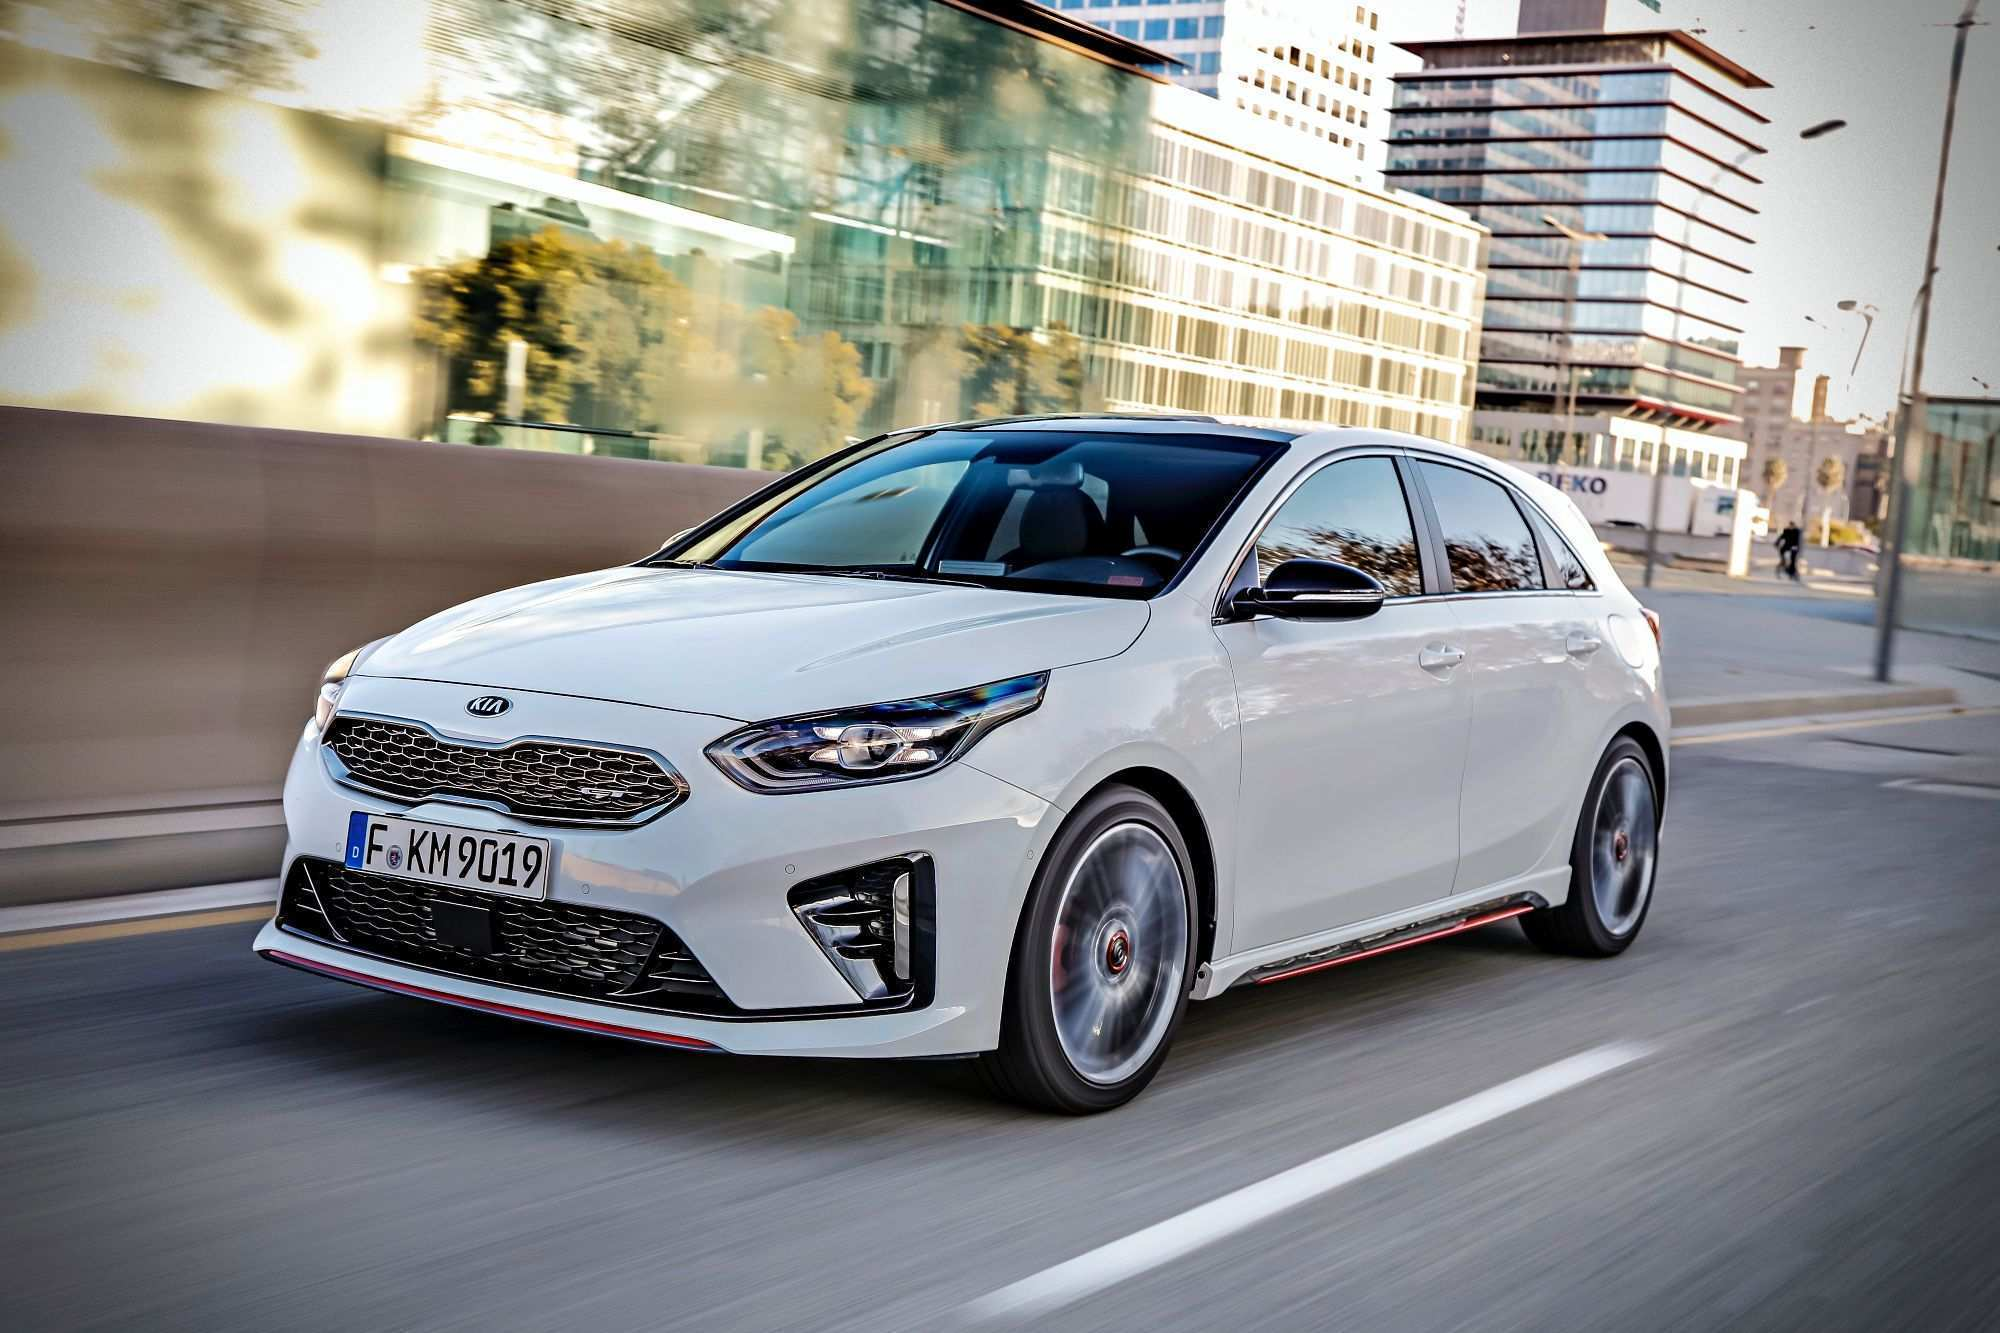 86 New Kia Gt 2019 Pictures